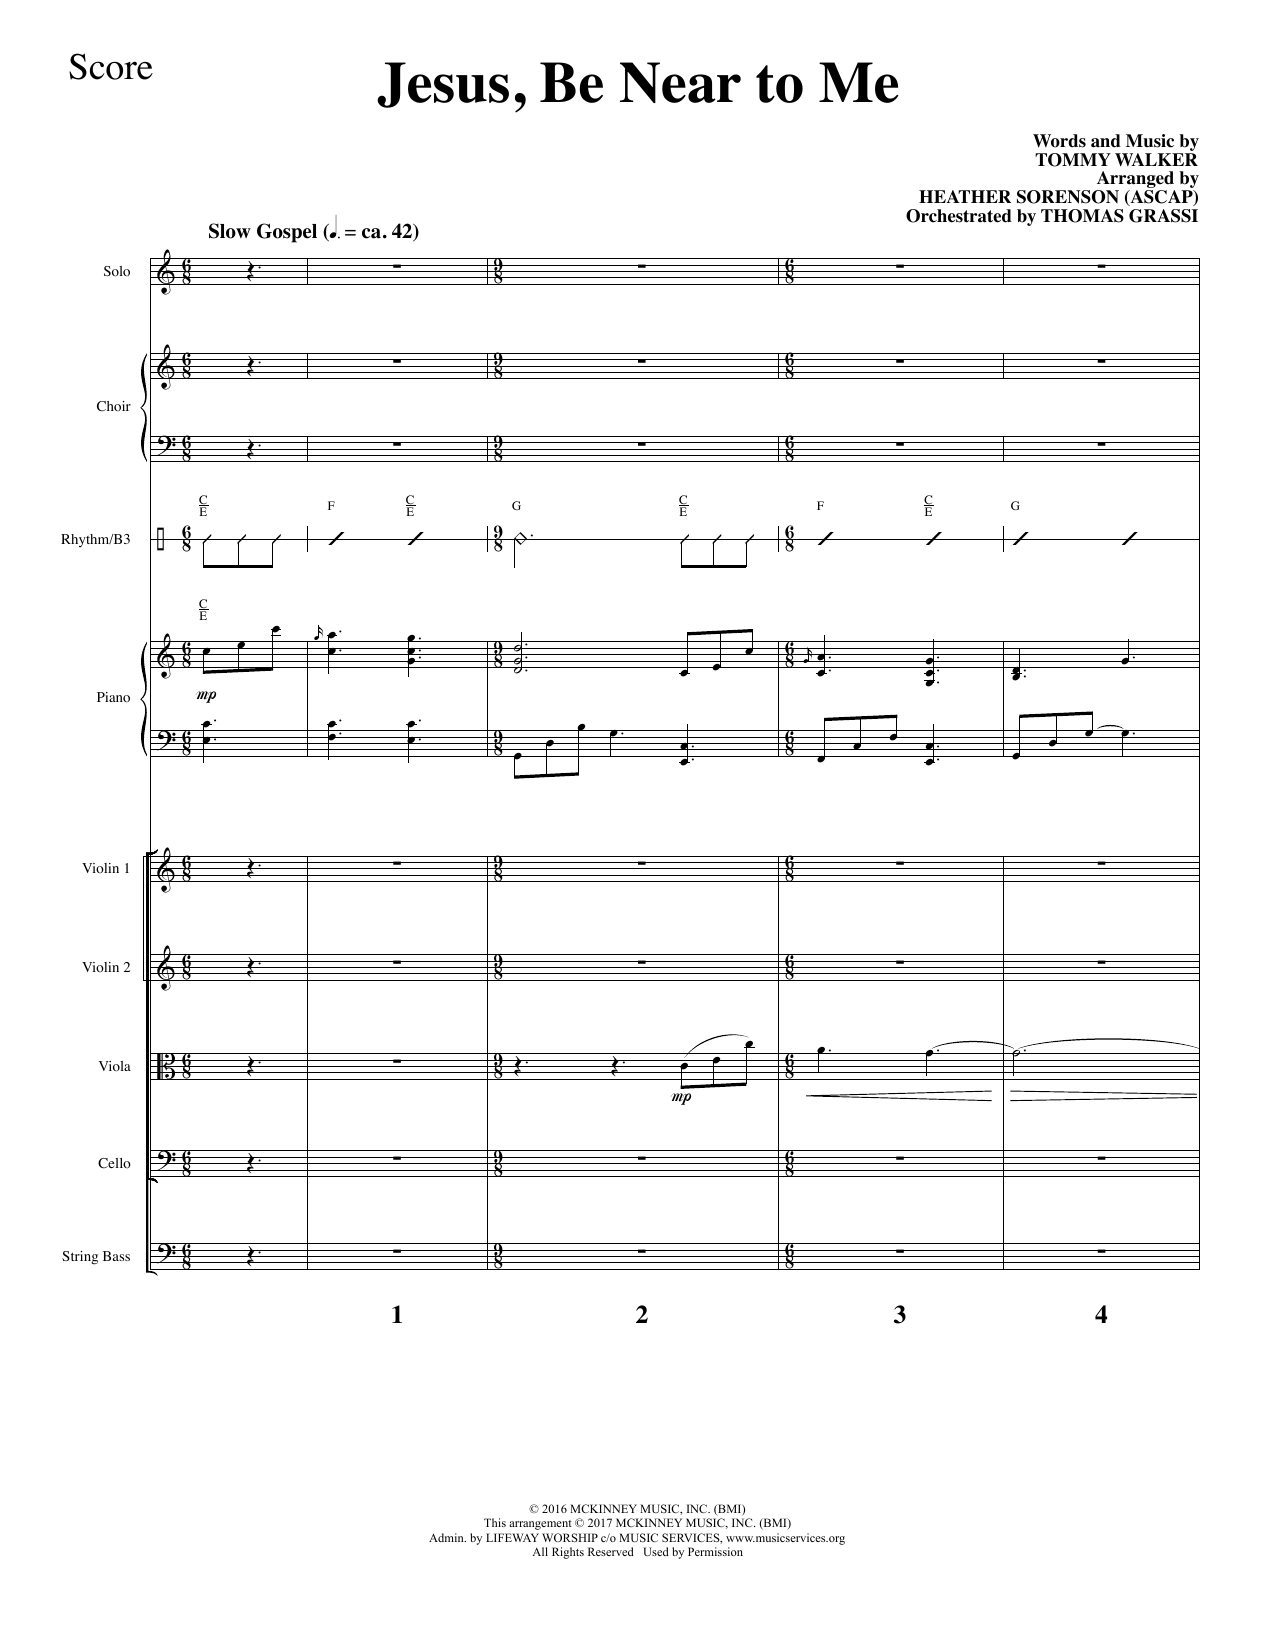 Tommy Walker - Jesus, Be Near to Me - Full Score